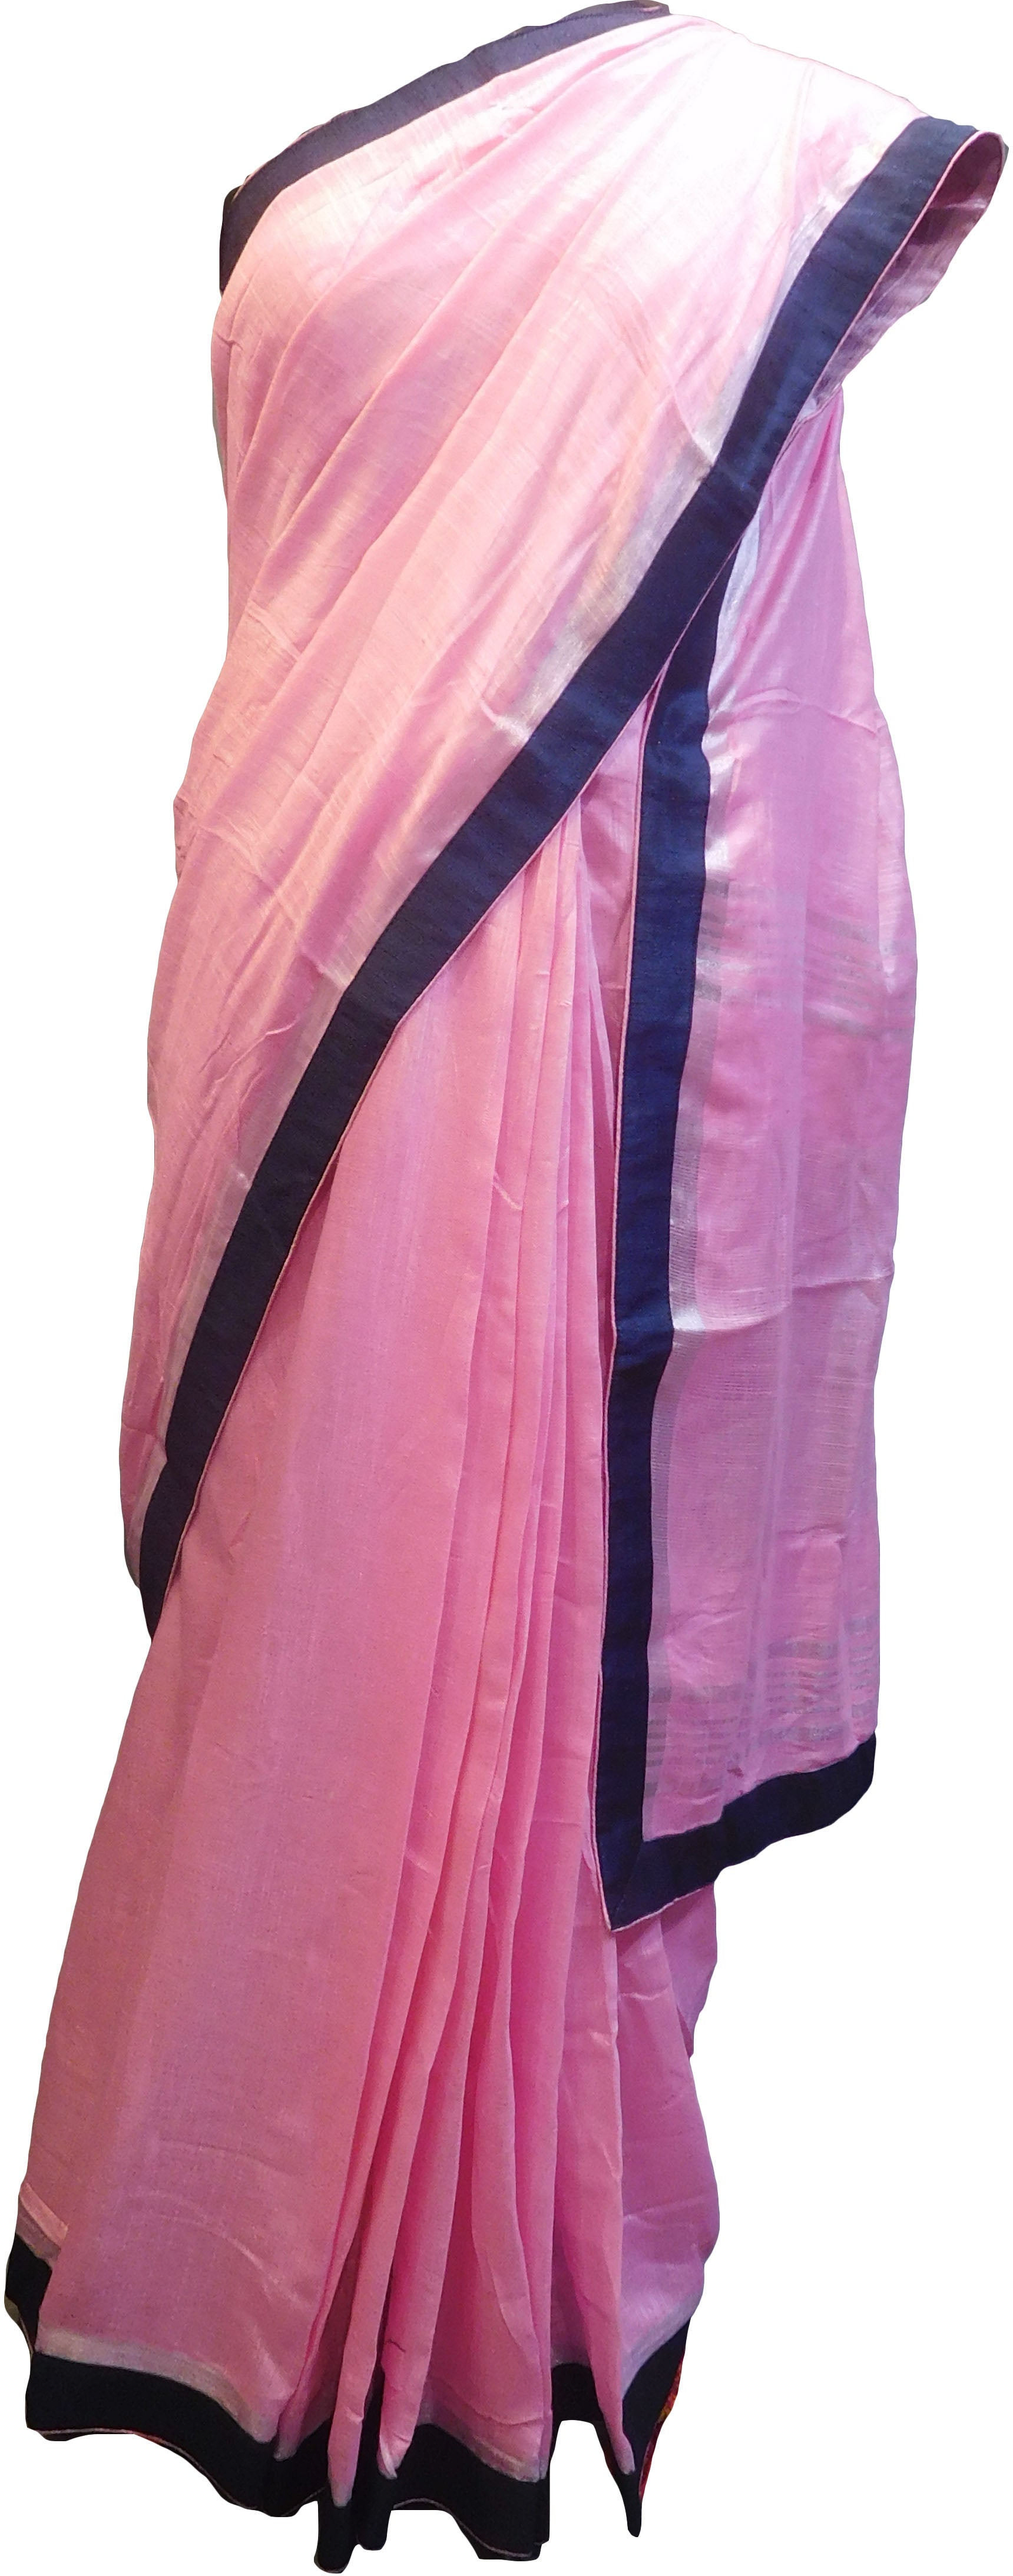 SMSAREE Pink Designer Wedding Partywear Handloom Linen Thread & Zari Hand Embroidery Work Bridal Saree Sari With Blouse Piece F127